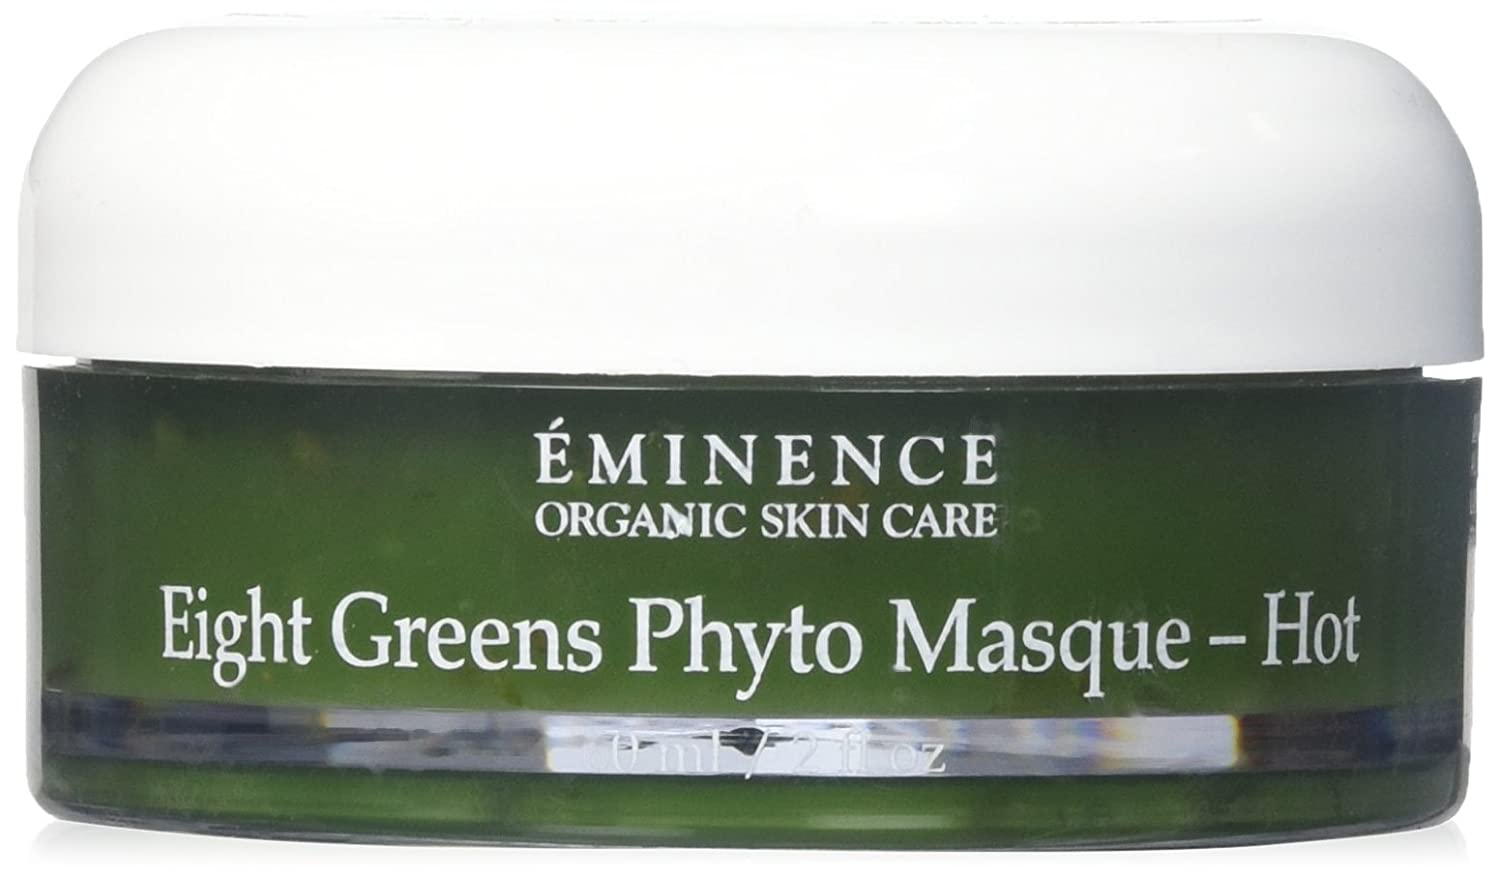 Eminence Eight Greens Phyto Masque, 2 Ounce